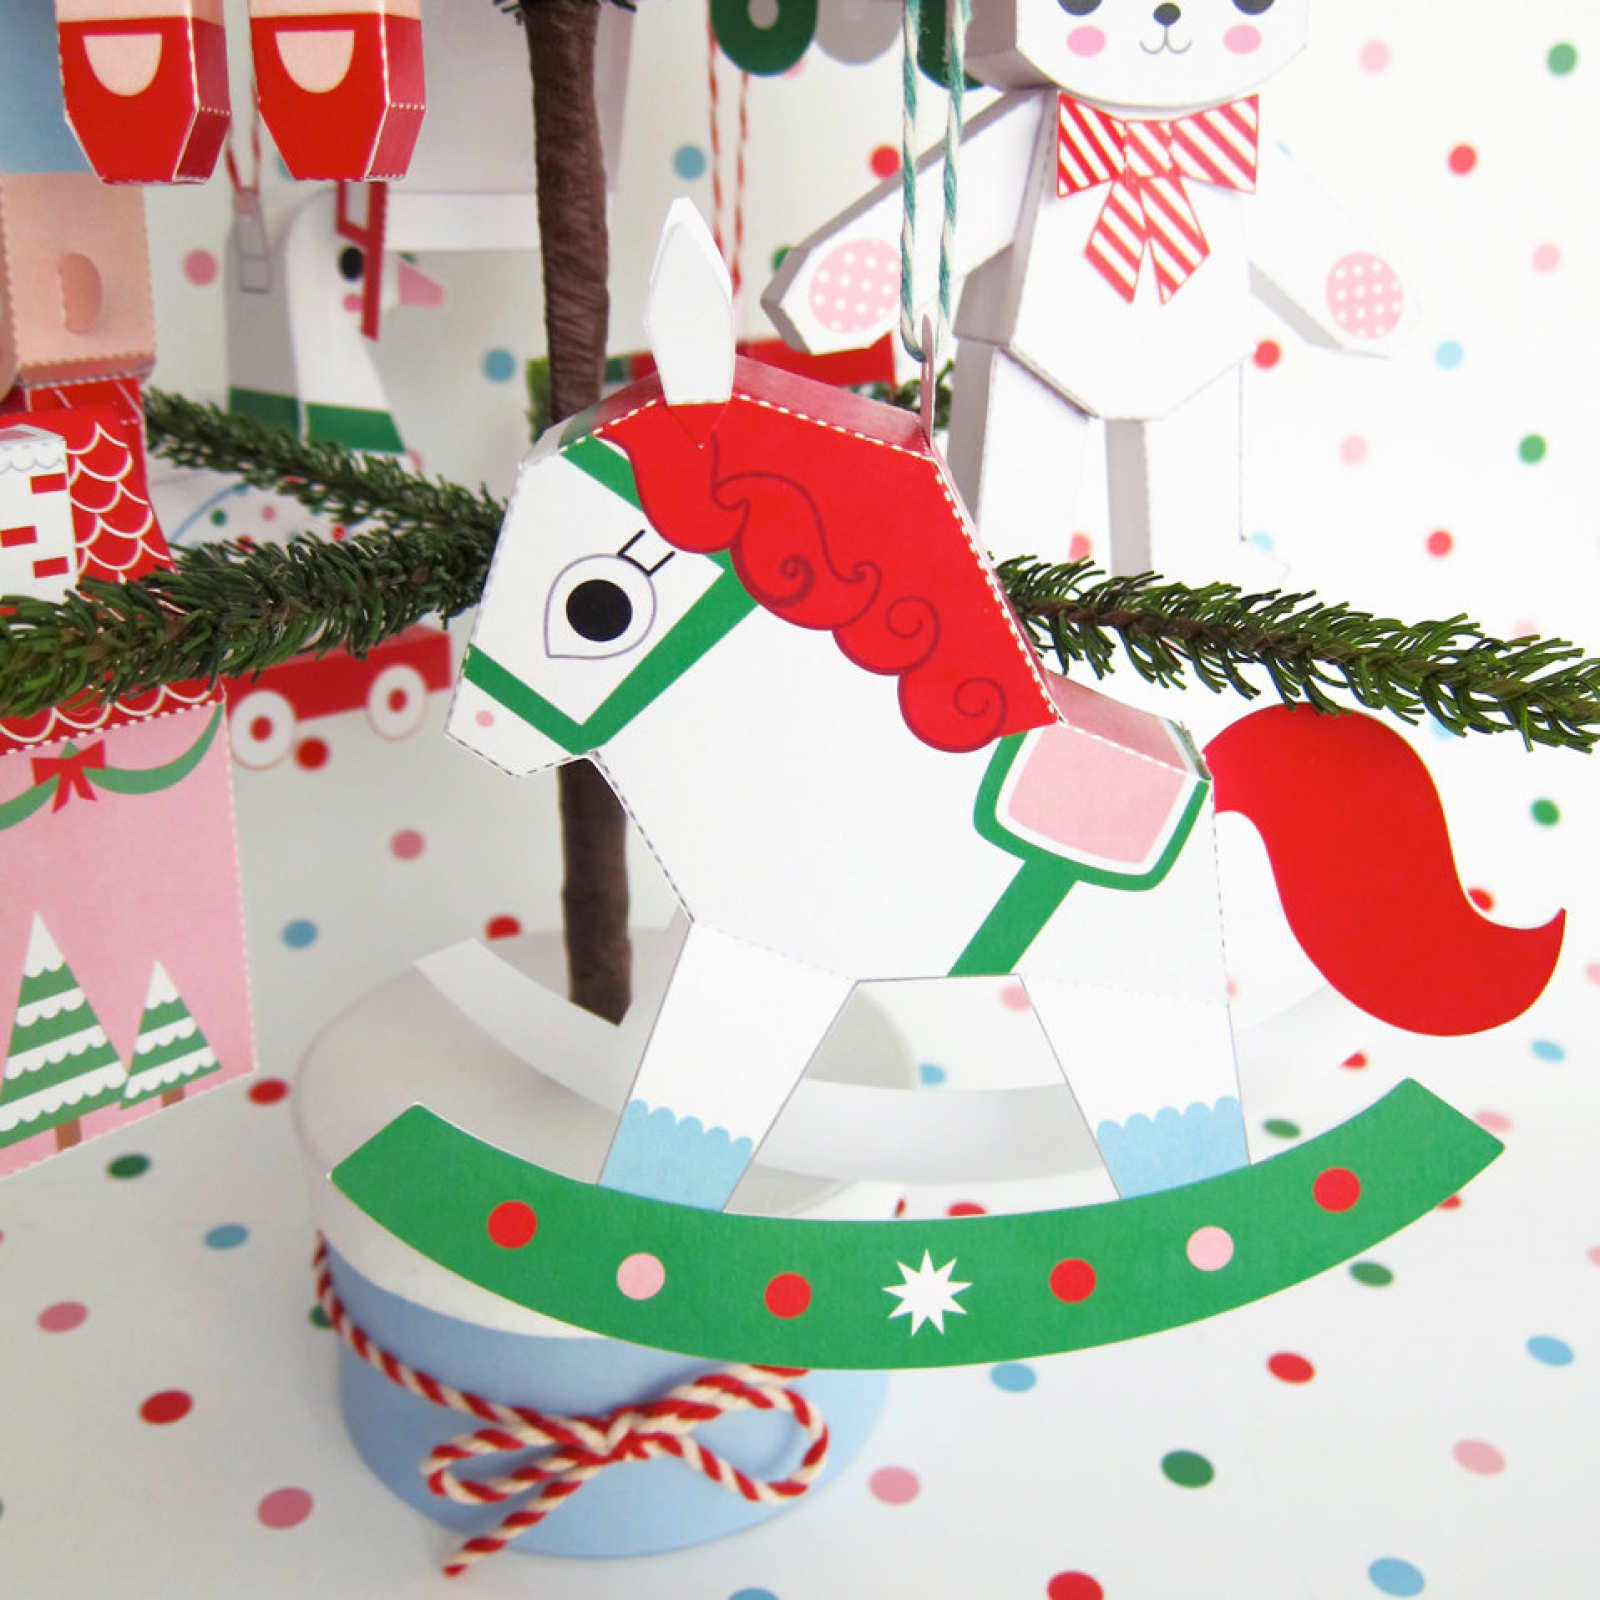 Teddy, Jack in Box, Rocking Horse Ornaments Printable Paper ...